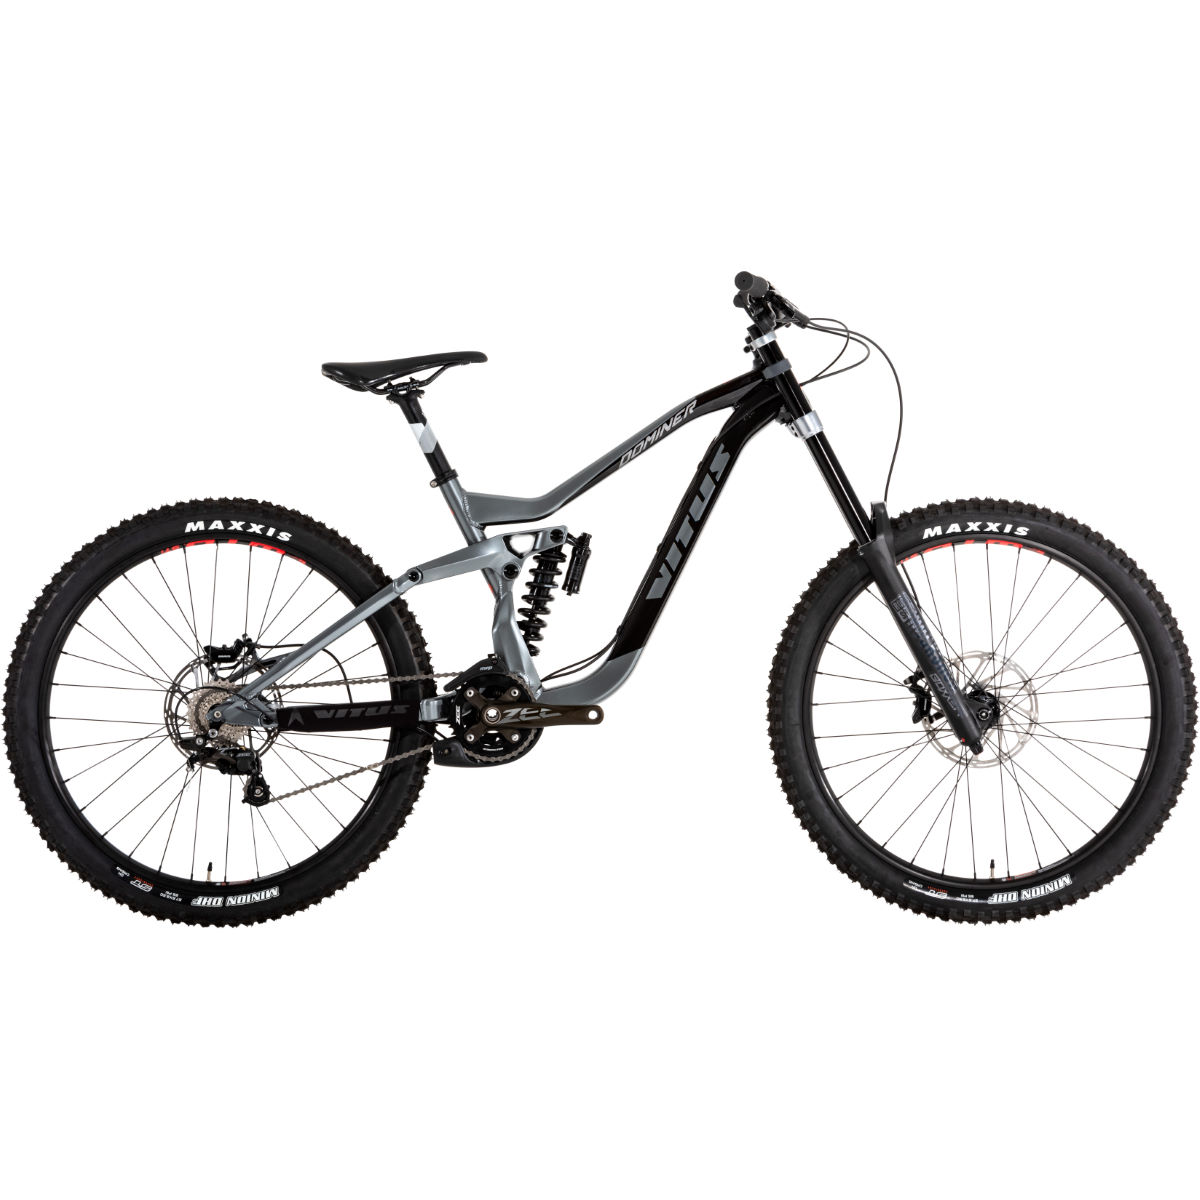 Vitus Dominer Downhill Mountain Bike (GX- 2019)   Full Suspension Mountain Bikes